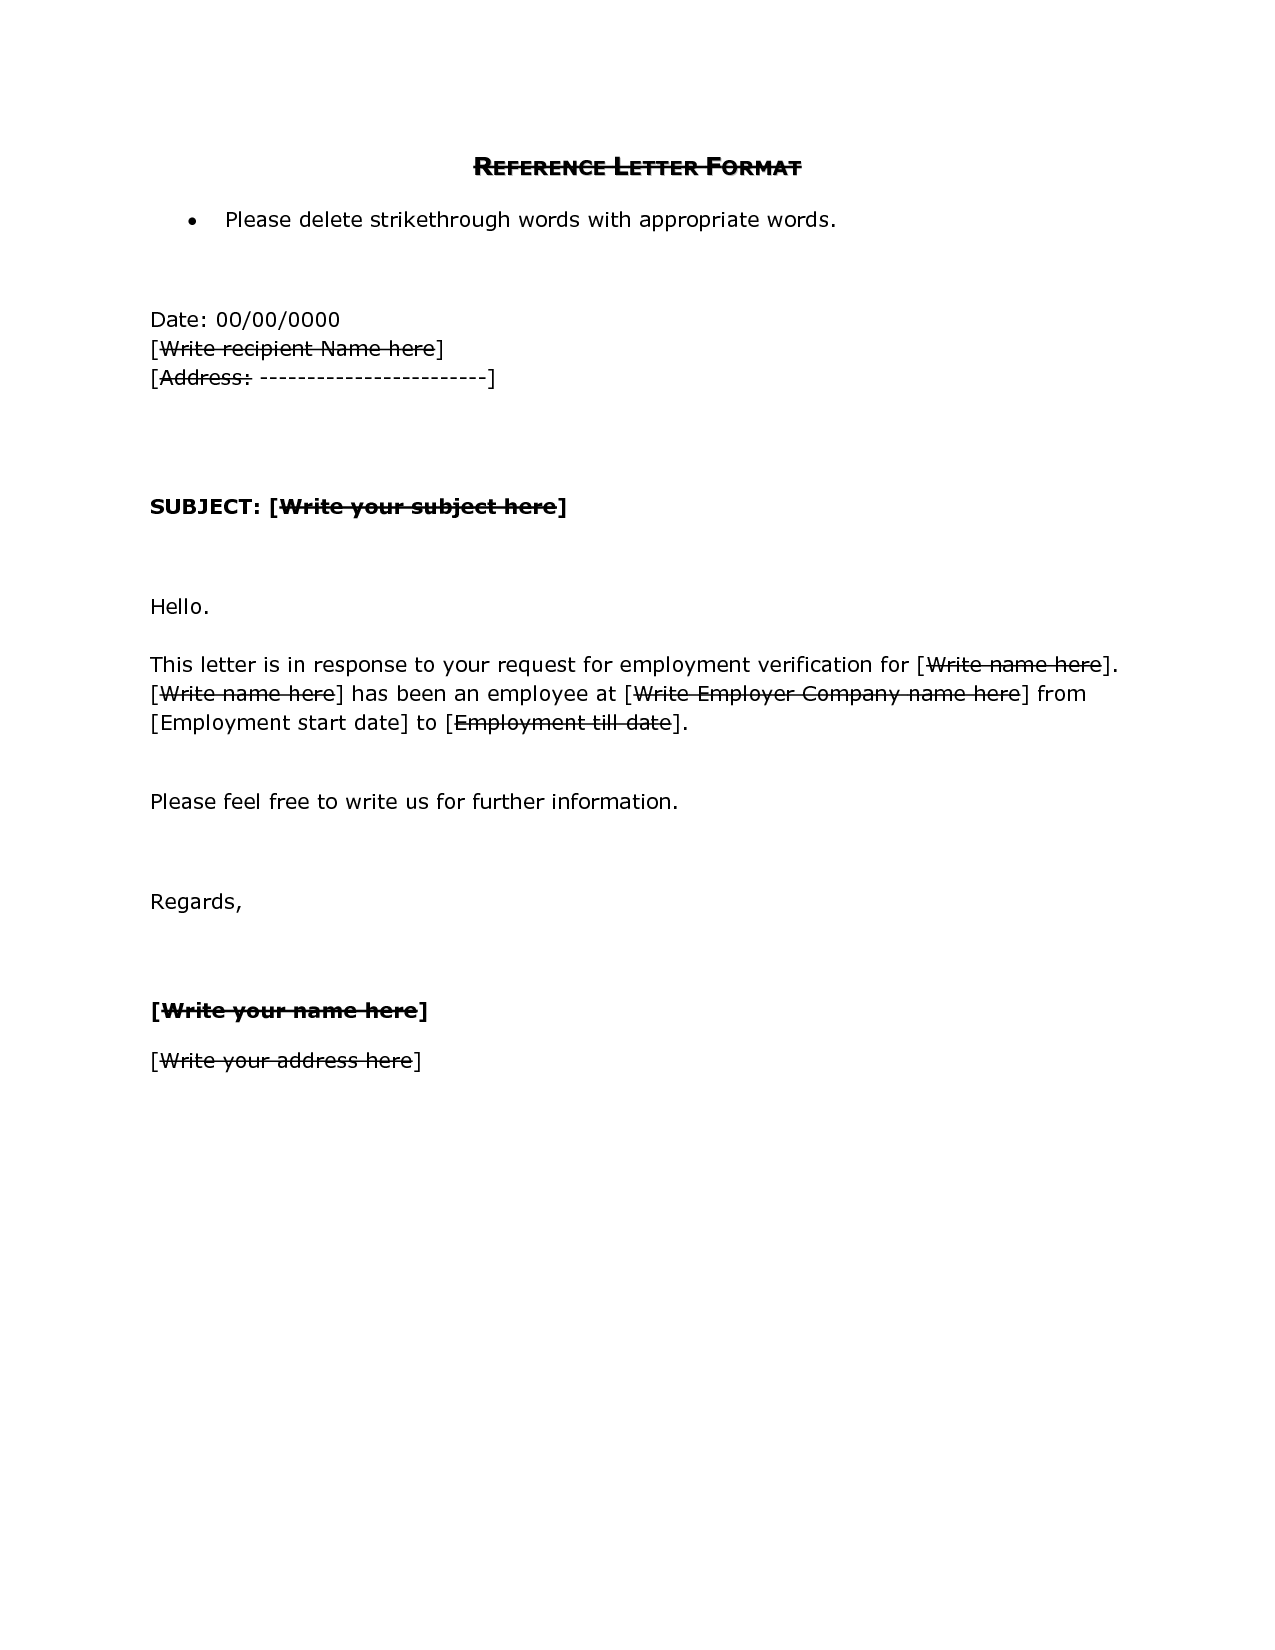 Simple reference letter format dawaydabrowa simple reference letter format expocarfo